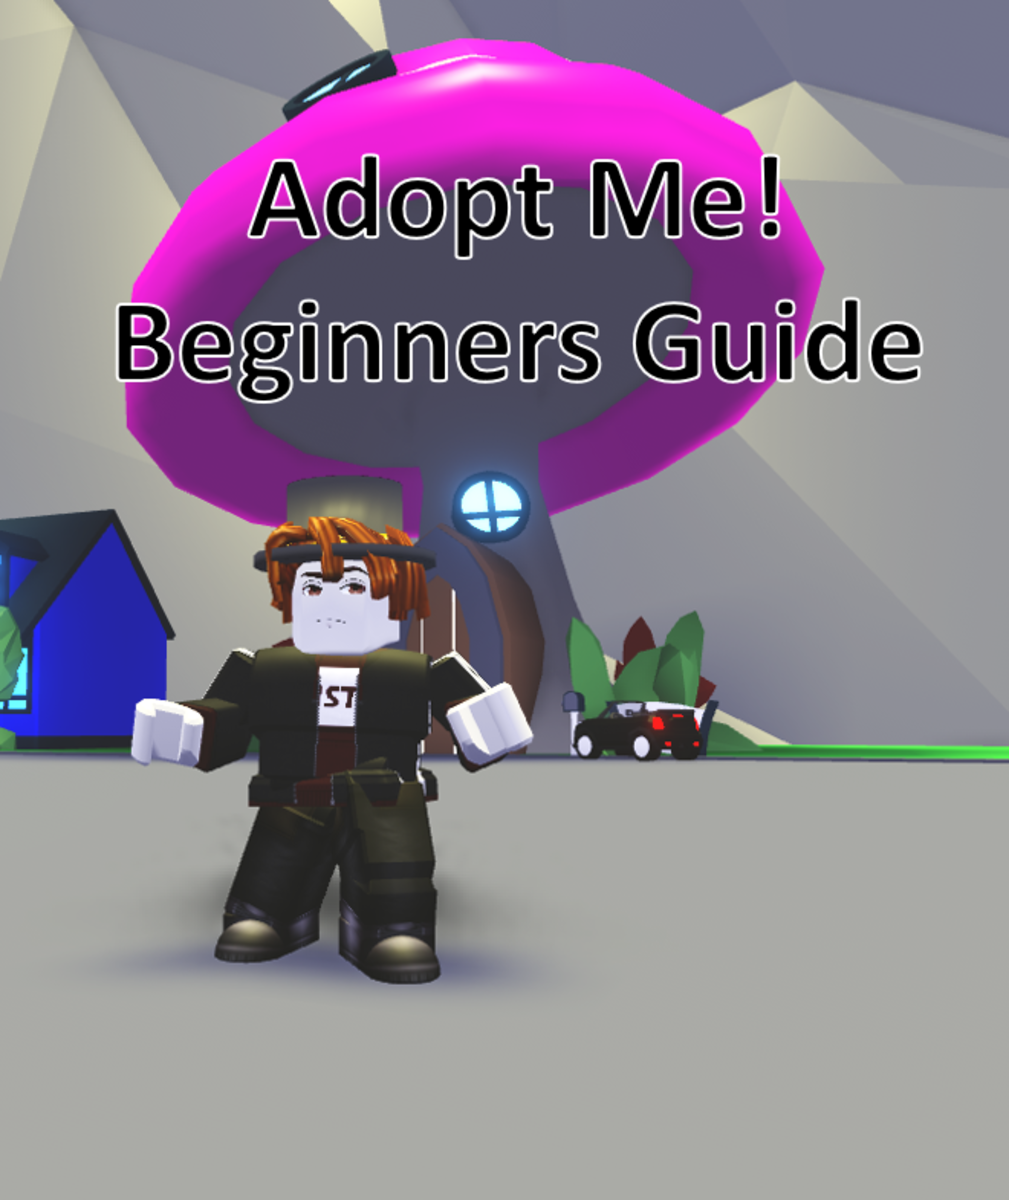 Roblox: Adopt Me! Beginners Guide - LevelSkip - Video Games